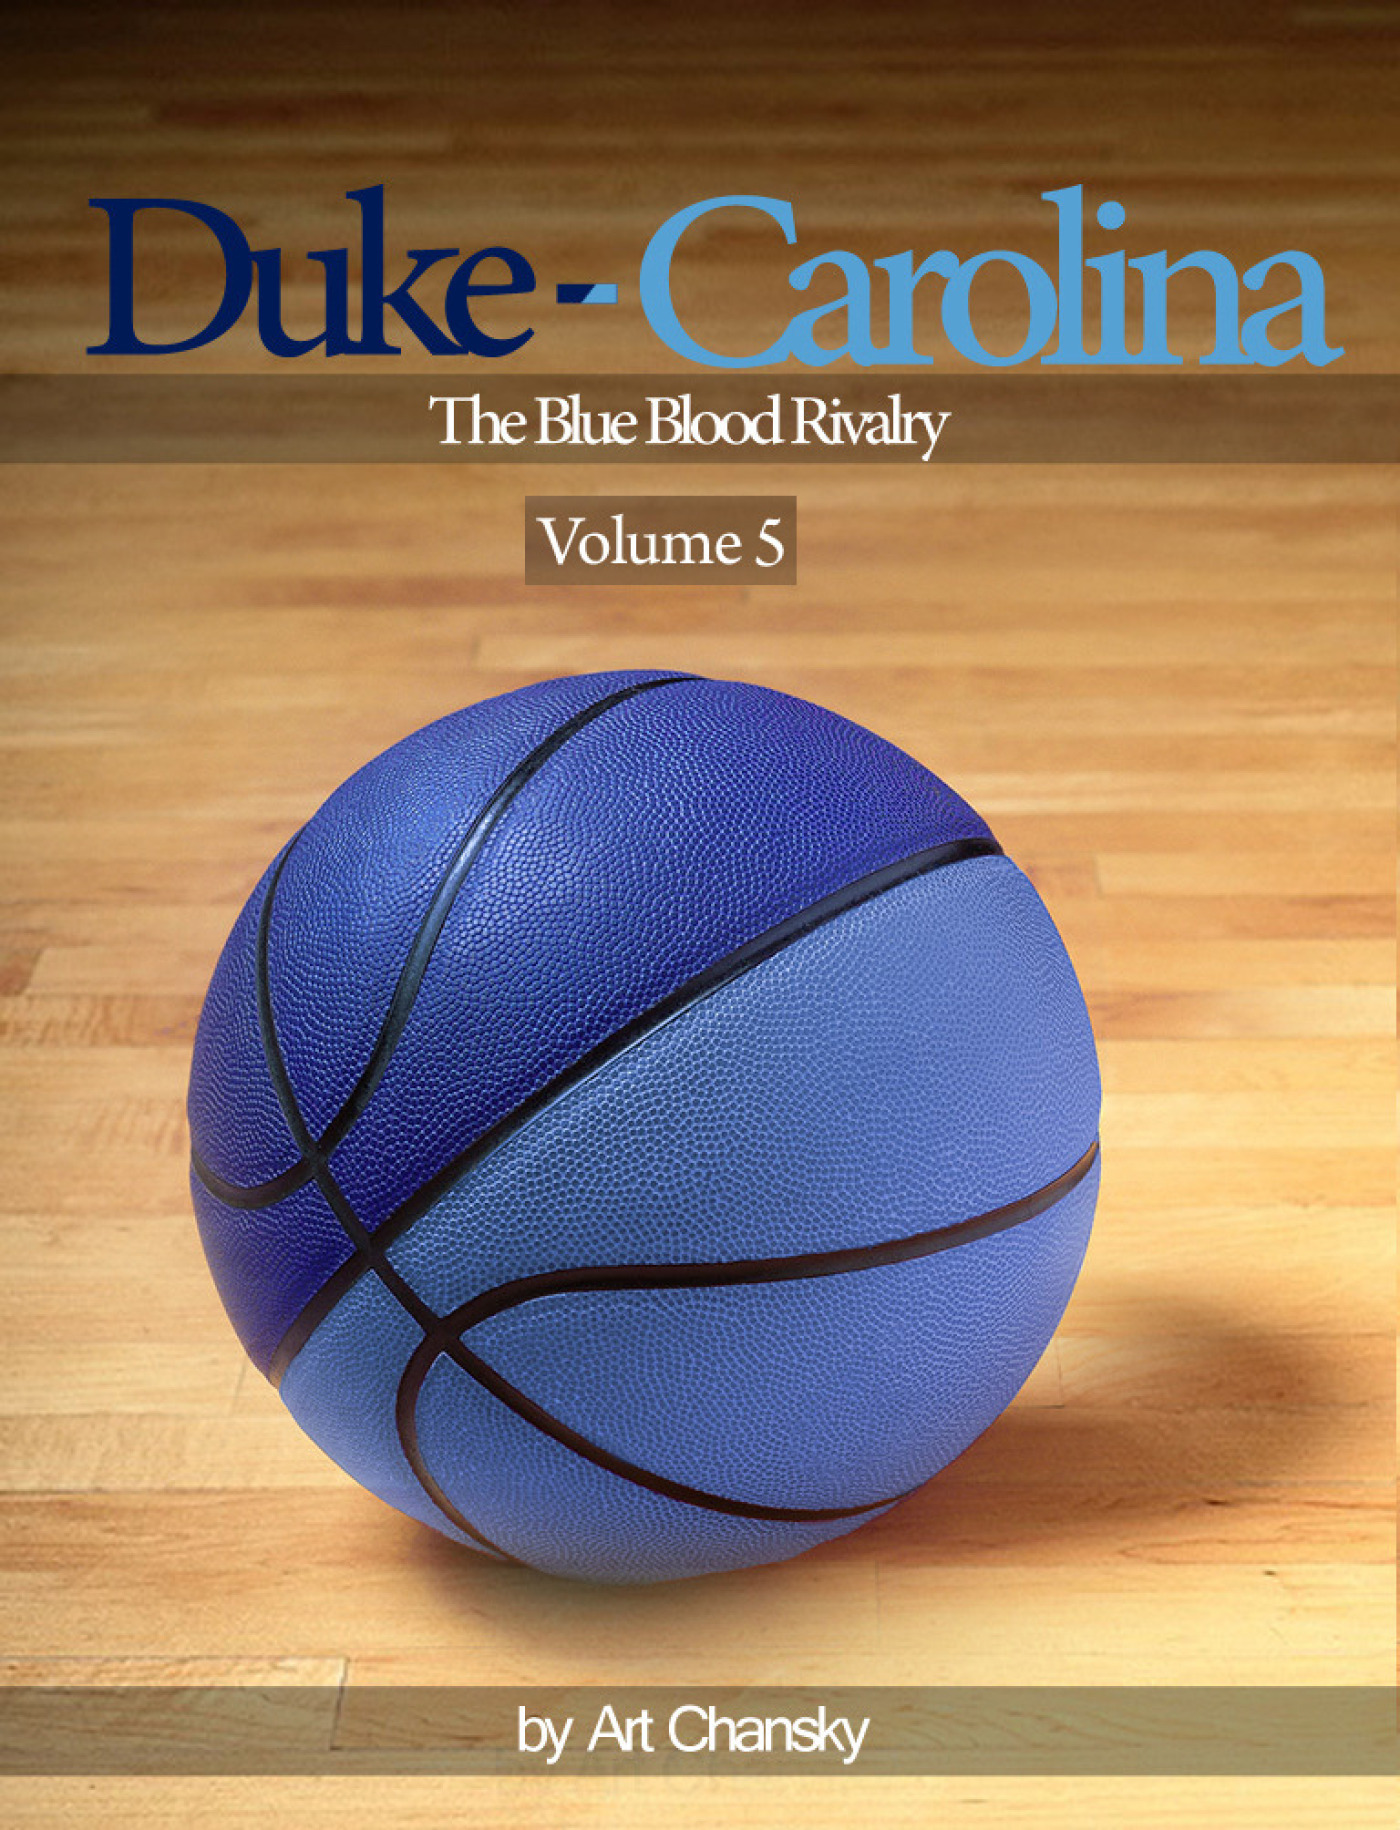 Duke - Carolina - Volume 5  The Blue Blood Rivalry